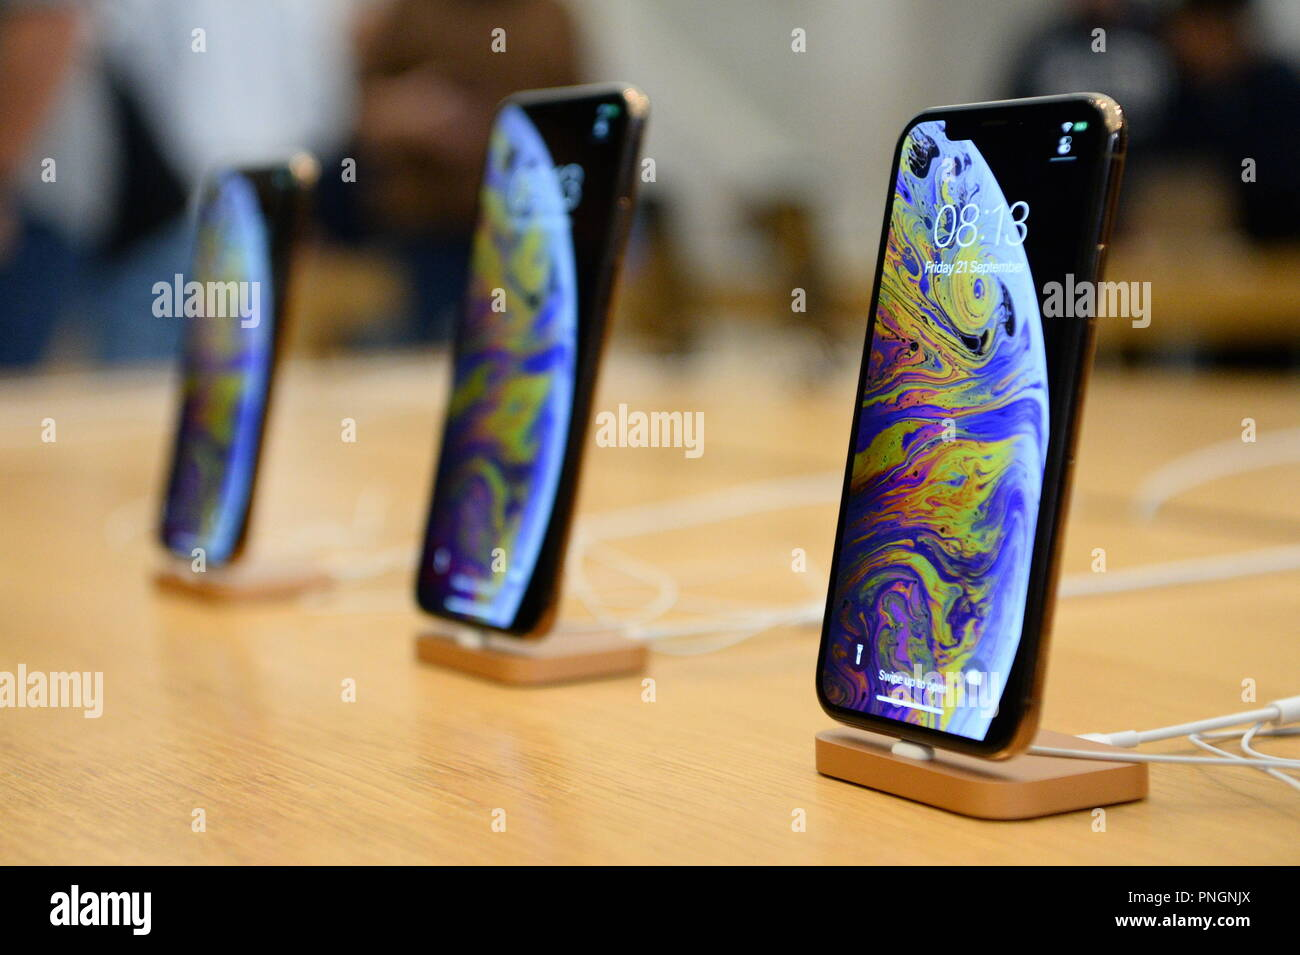 A display of the new iPhone XS and iPhone XS Max in the Apple Store in Regent Street, central London, as they go on sale in the UK for the first time, alongside the Apple Watch Series 4. - Stock Image